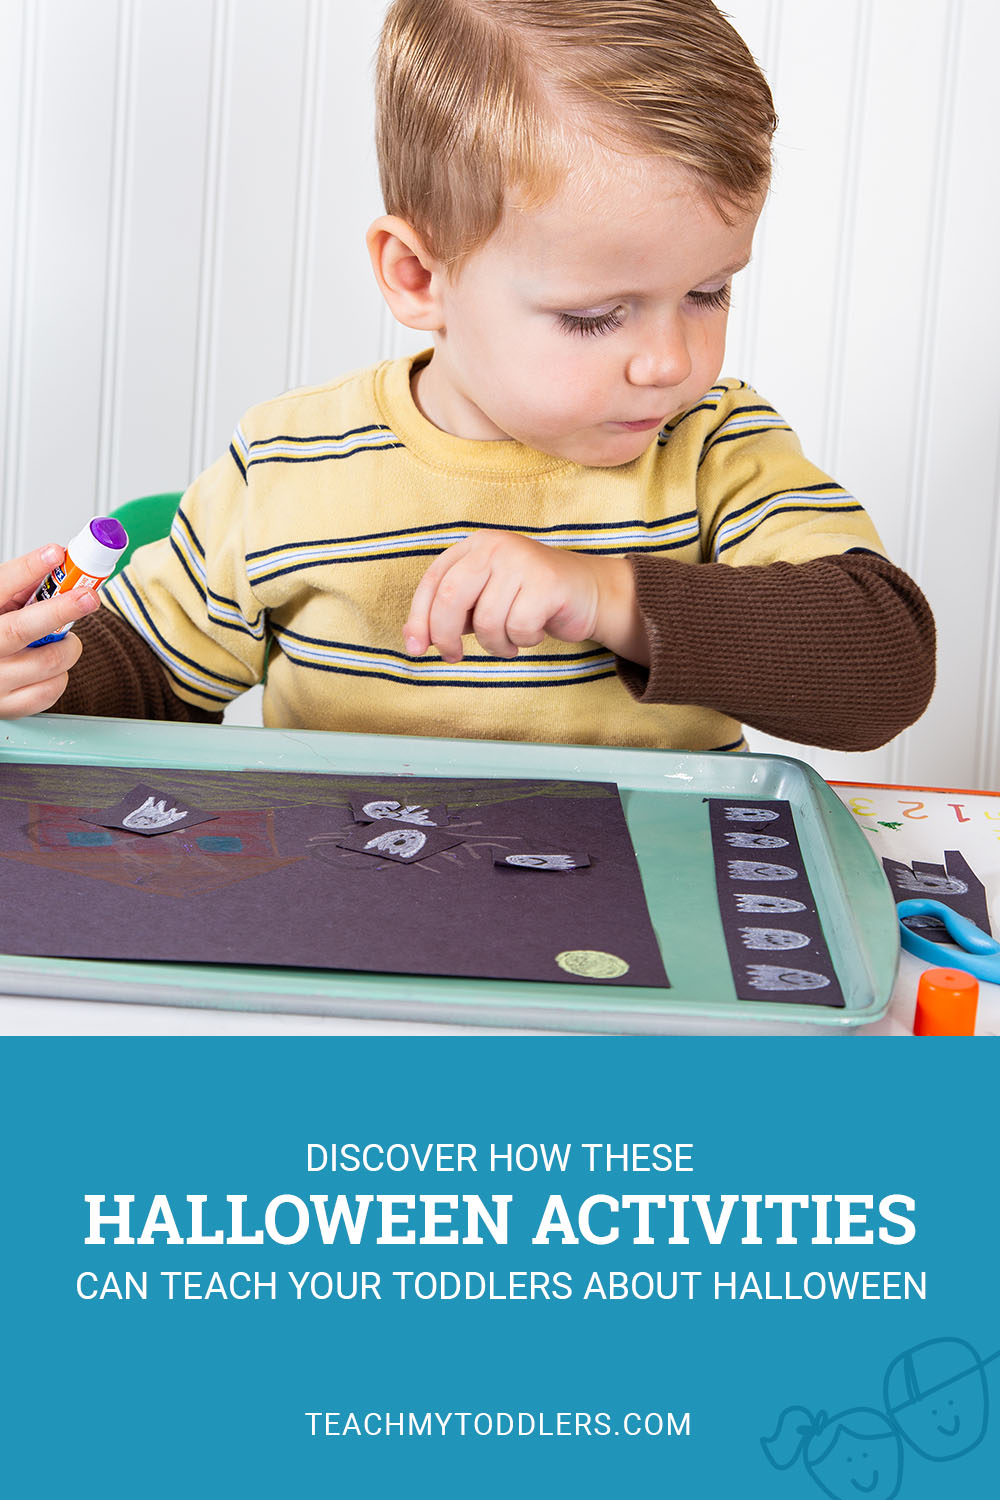 Discover how these halloween activities can teach toddlers about halloween